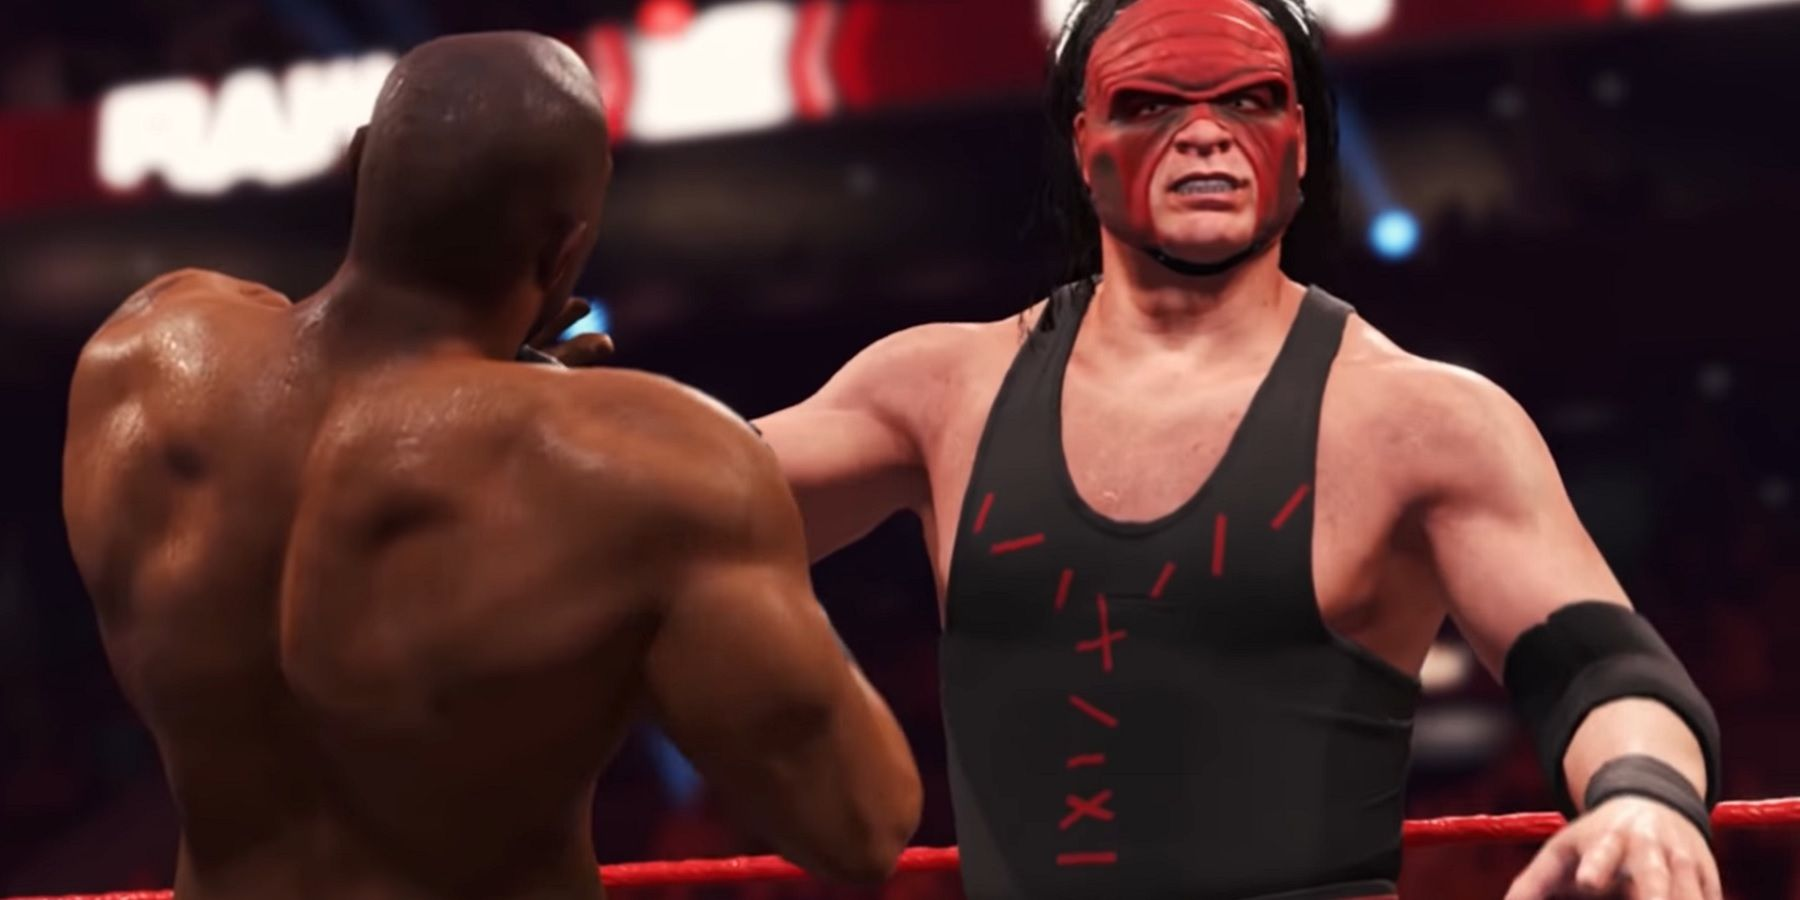 WWE 2K22 Report Details 'Seriously Strained' Relationship Between WWE and 2K Sports